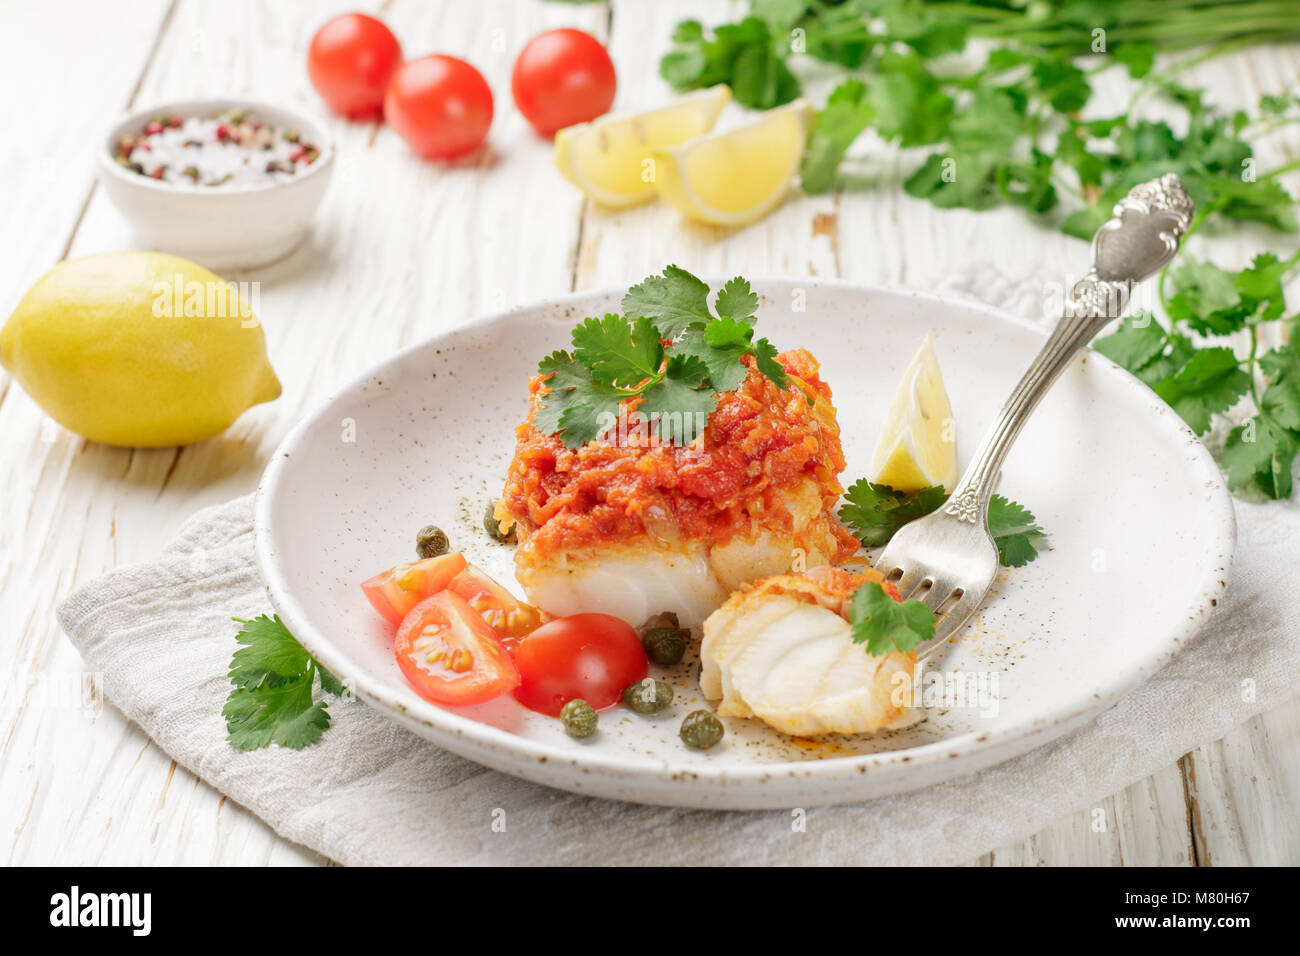 White fish (cod, Pollock, nototenia, hake), braised with onions, carrots and tomatoes. Vegetable marinade. Delicious - Stock Image